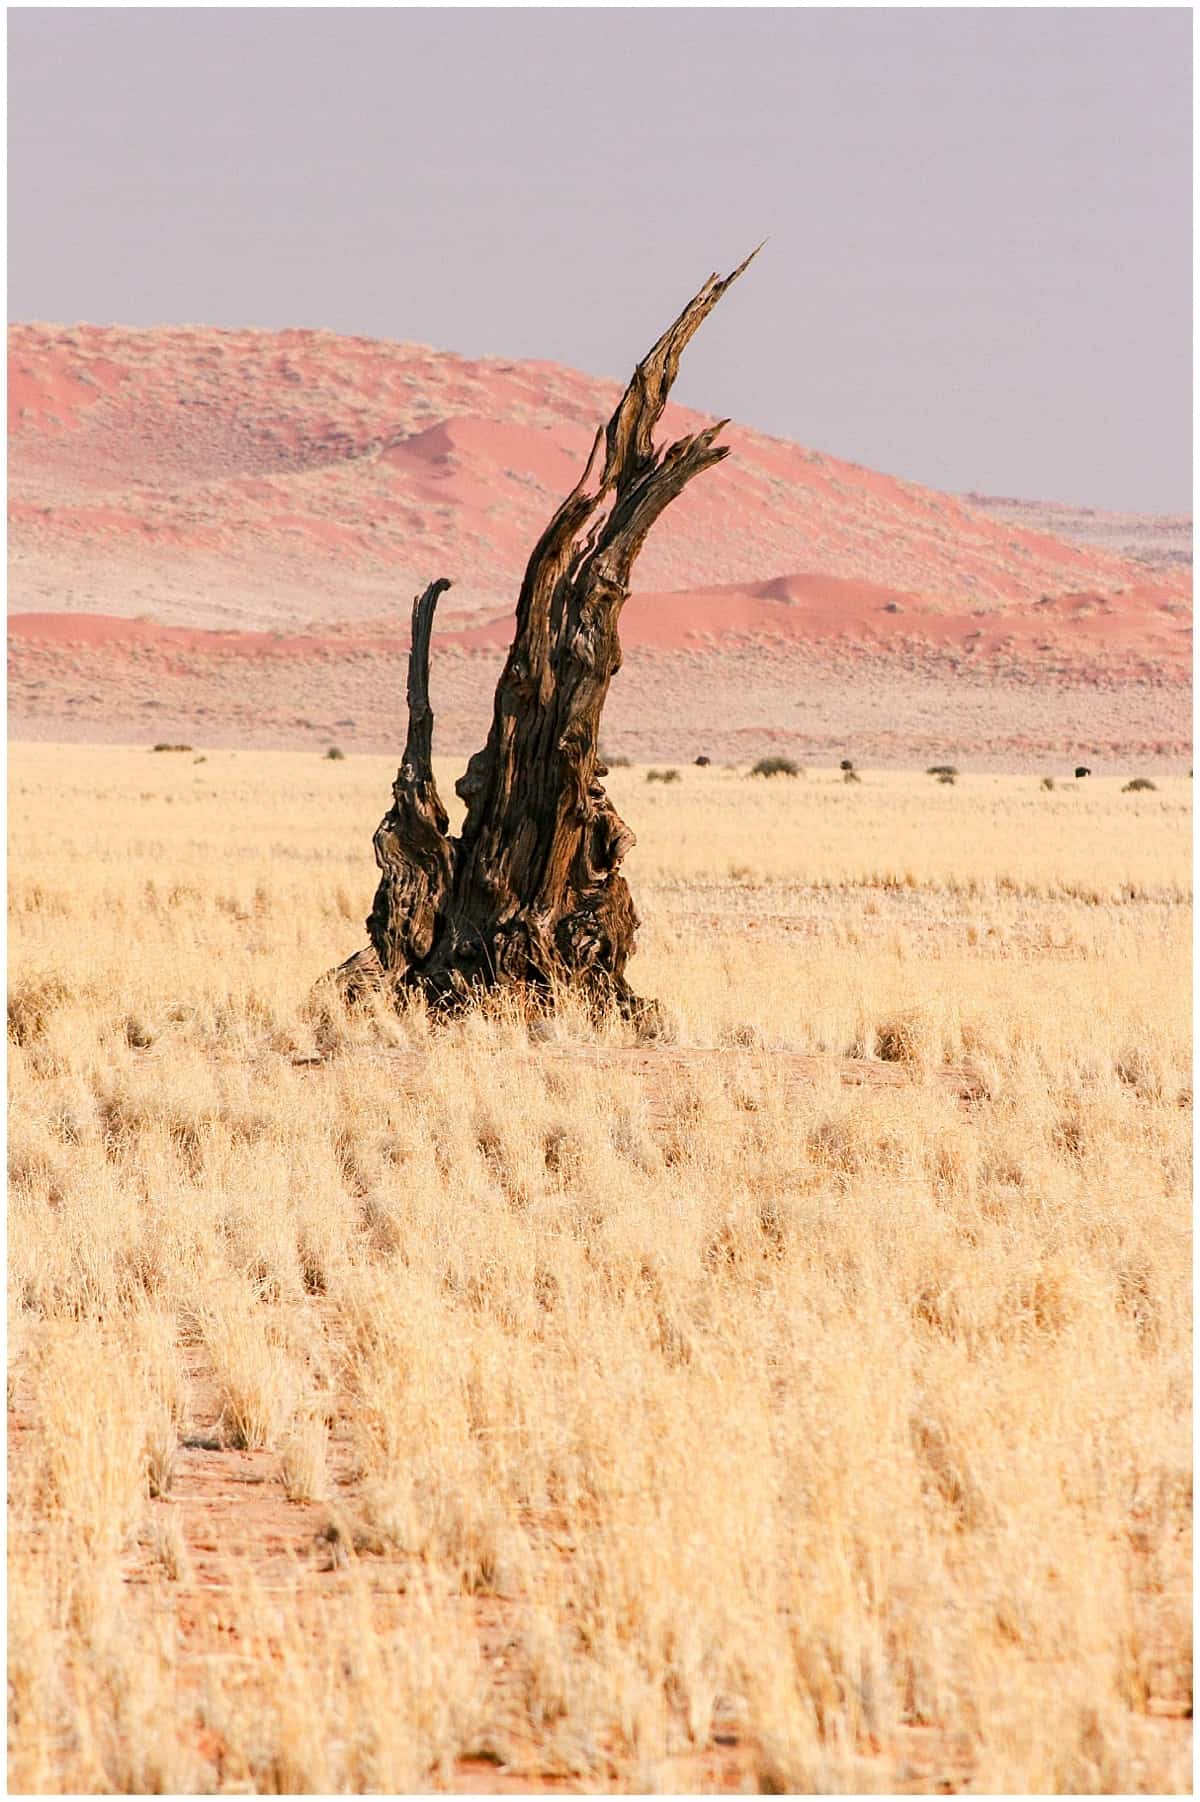 Dead tree in the grass near Namibia in the world's oldest desert